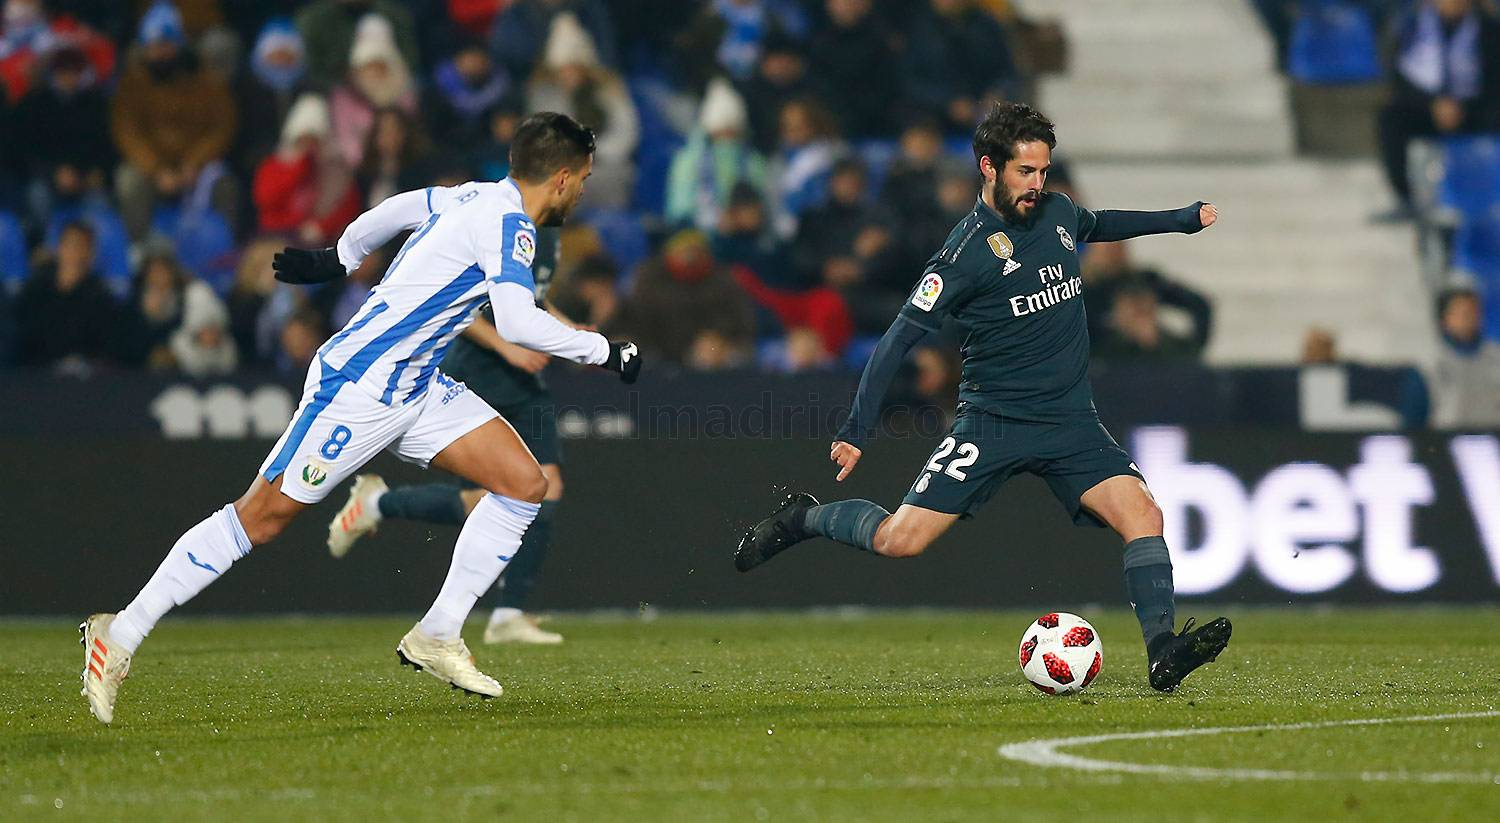 Real Madrid - Leganés - Real Madrid - 16-01-2019